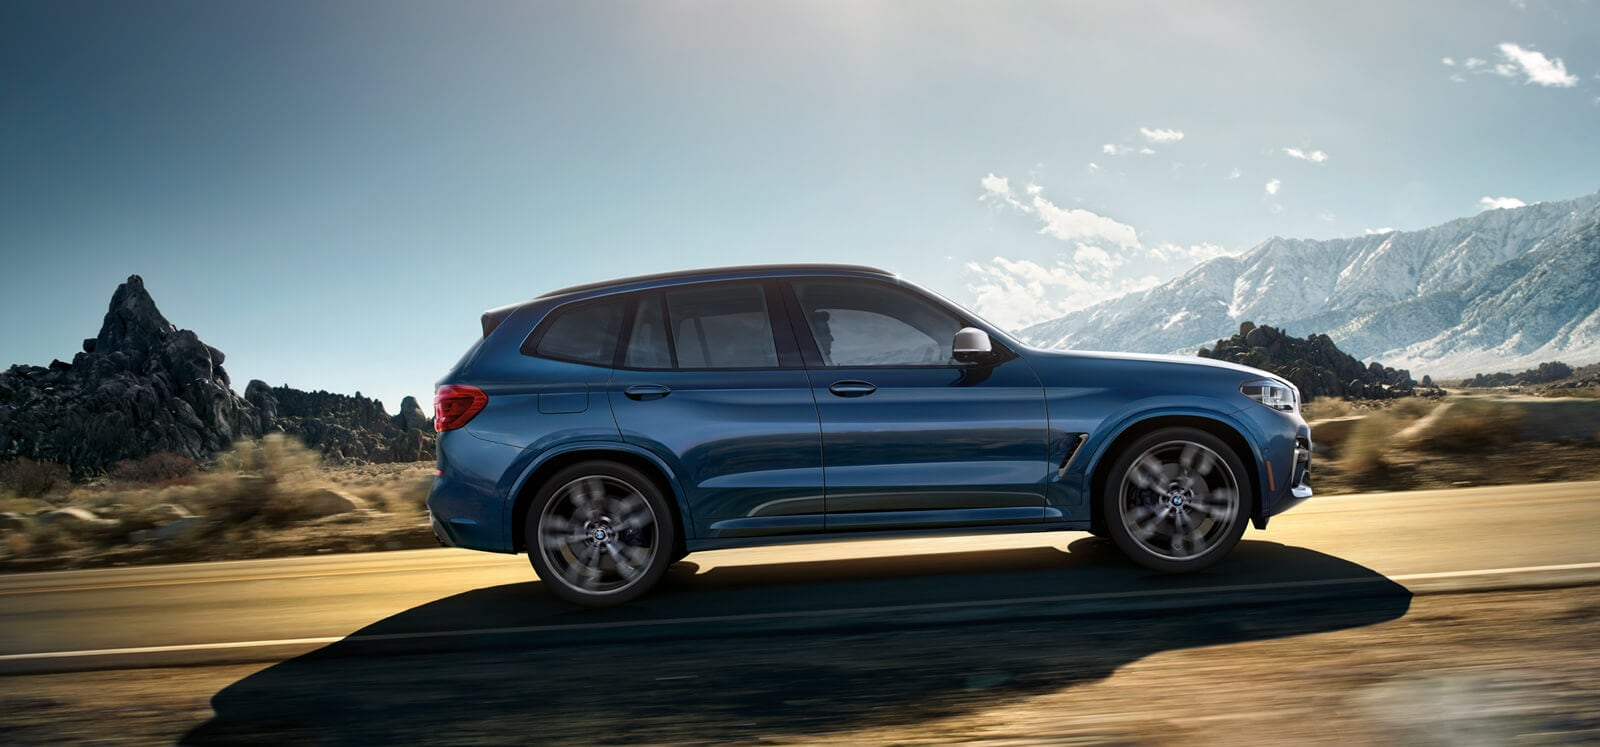 bmw x3 sports activity vehicle overview � bmw usa